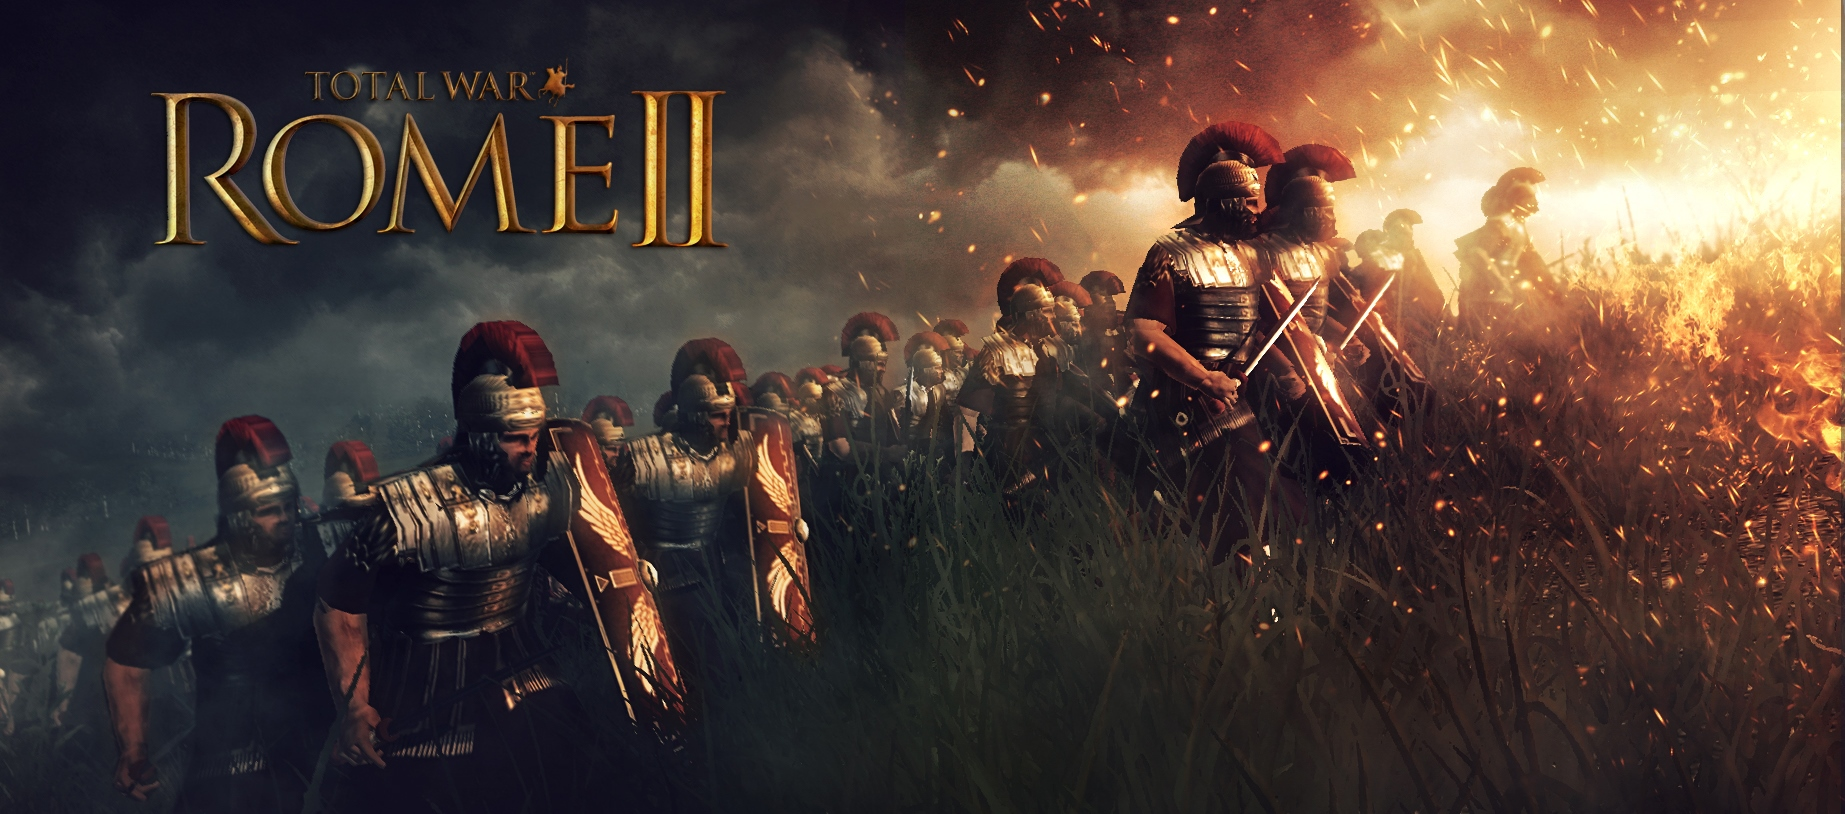 Total-War-Rome-II-Wallpaper